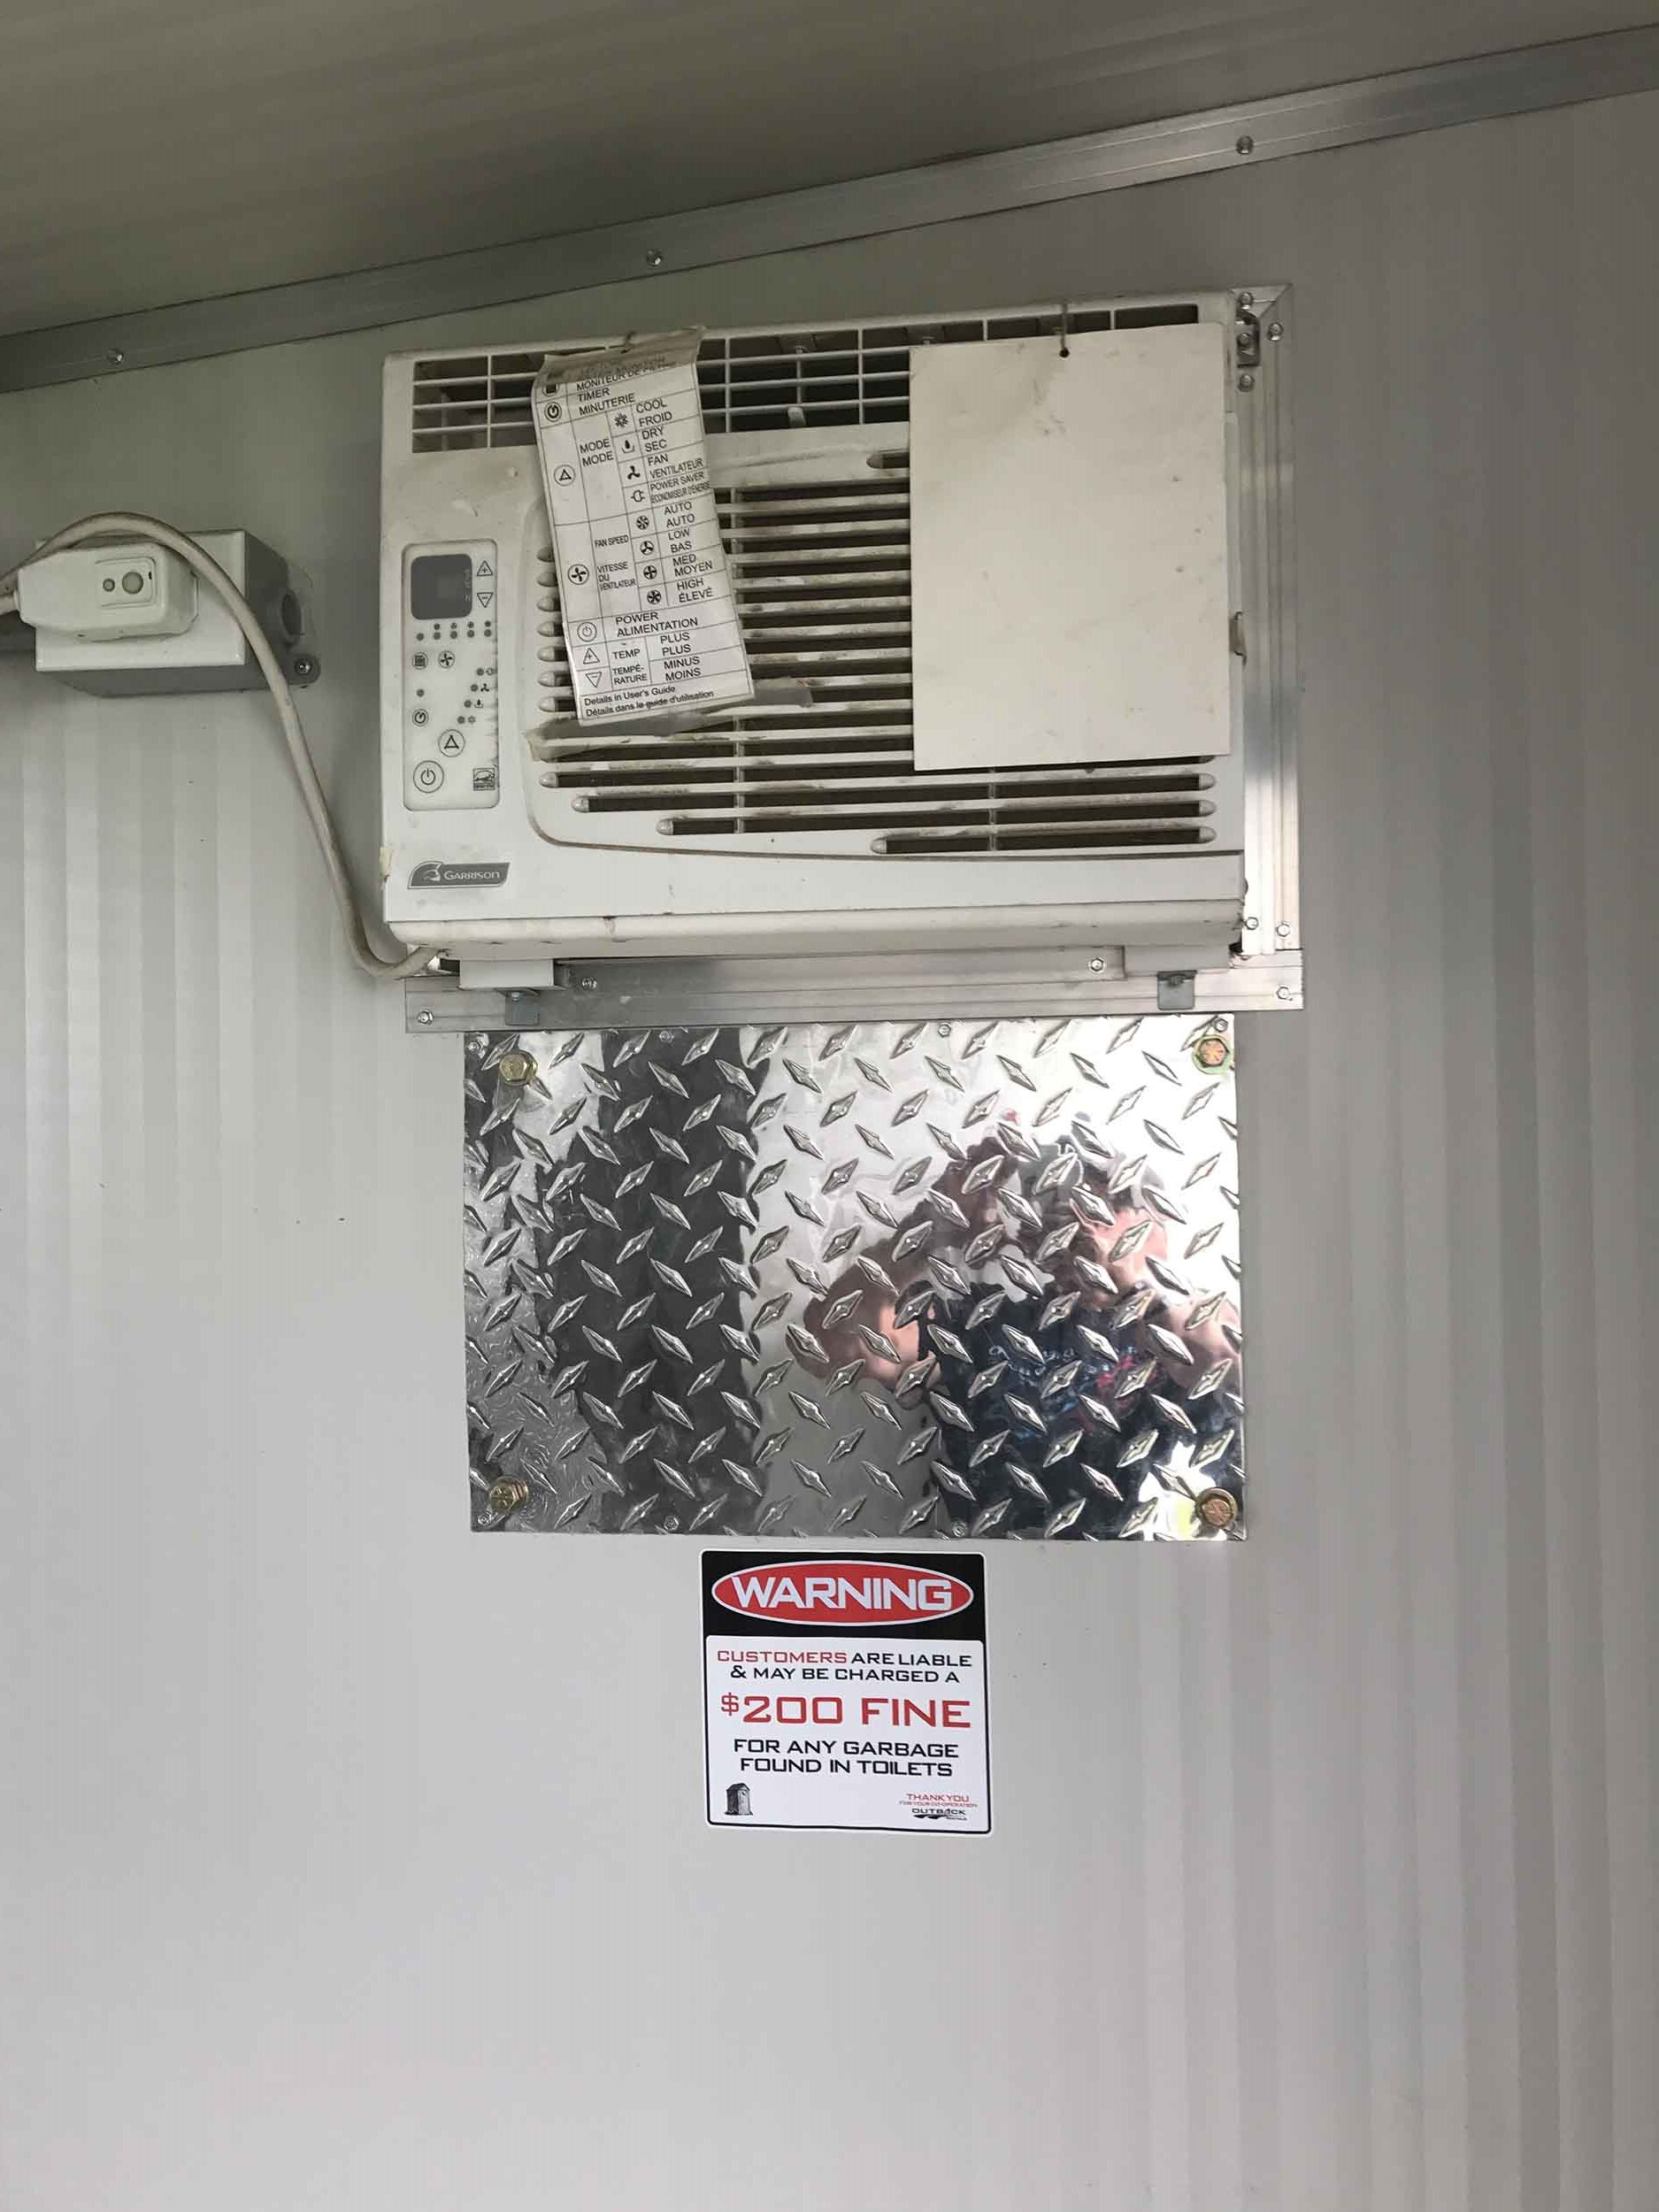 Air Conditioning Unit on Executive Portable Toilet by Steelhead VEntures